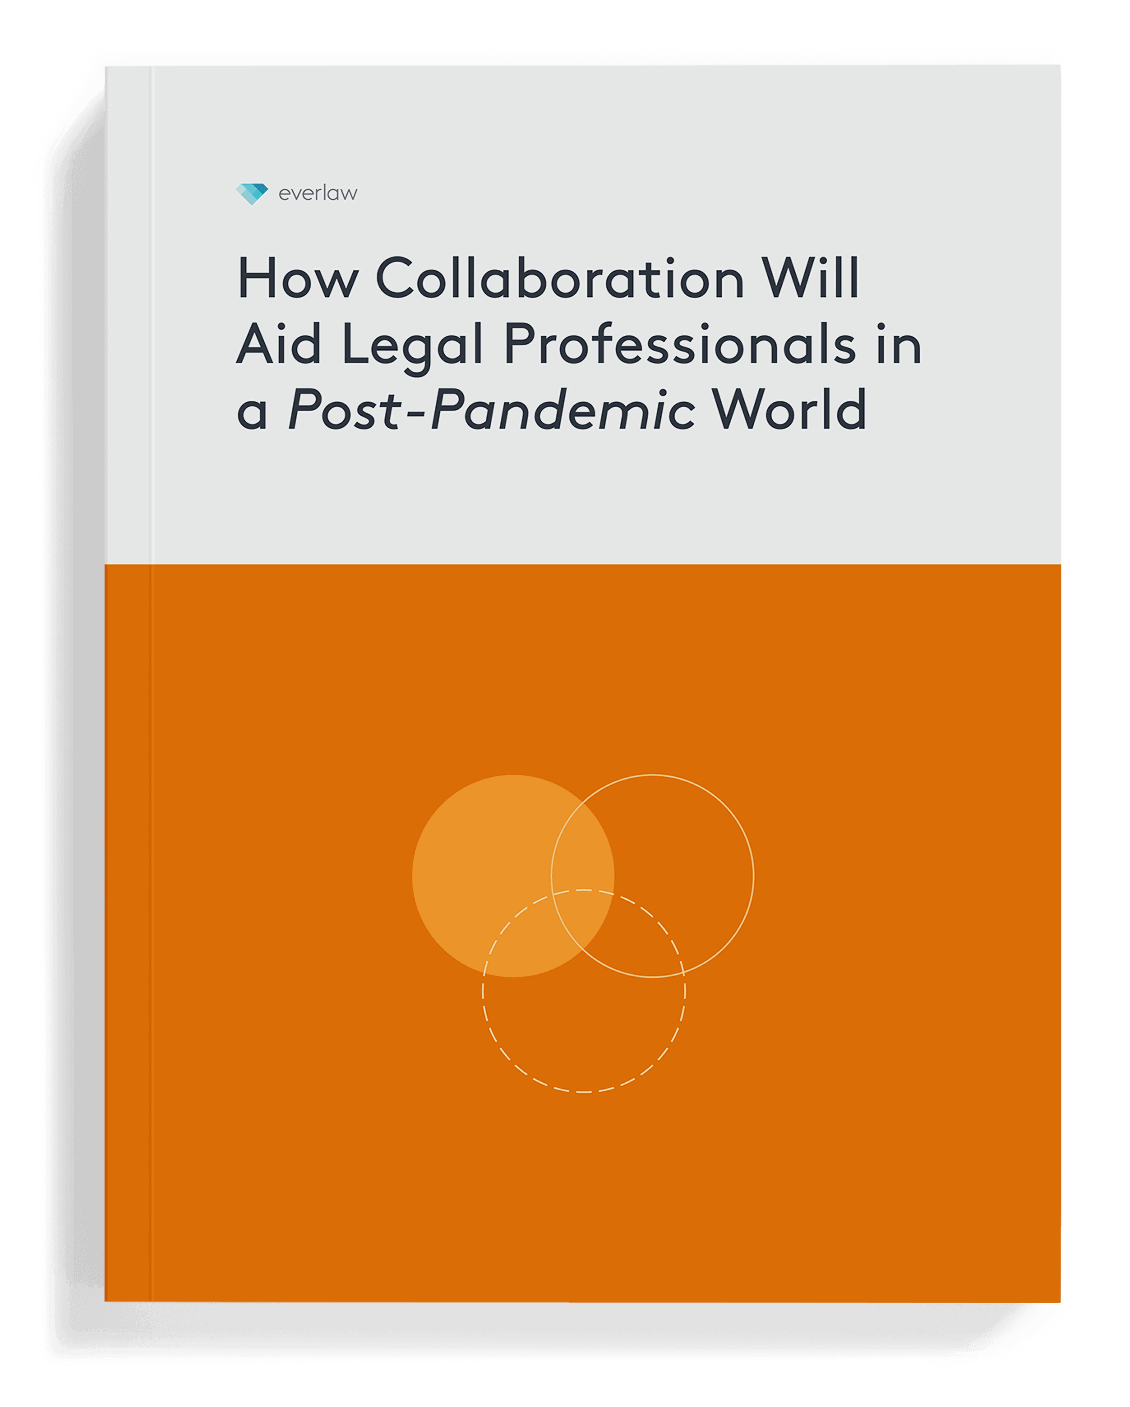 How Collaboration Will Aid Legal Professionals in a Post-Pandemic World